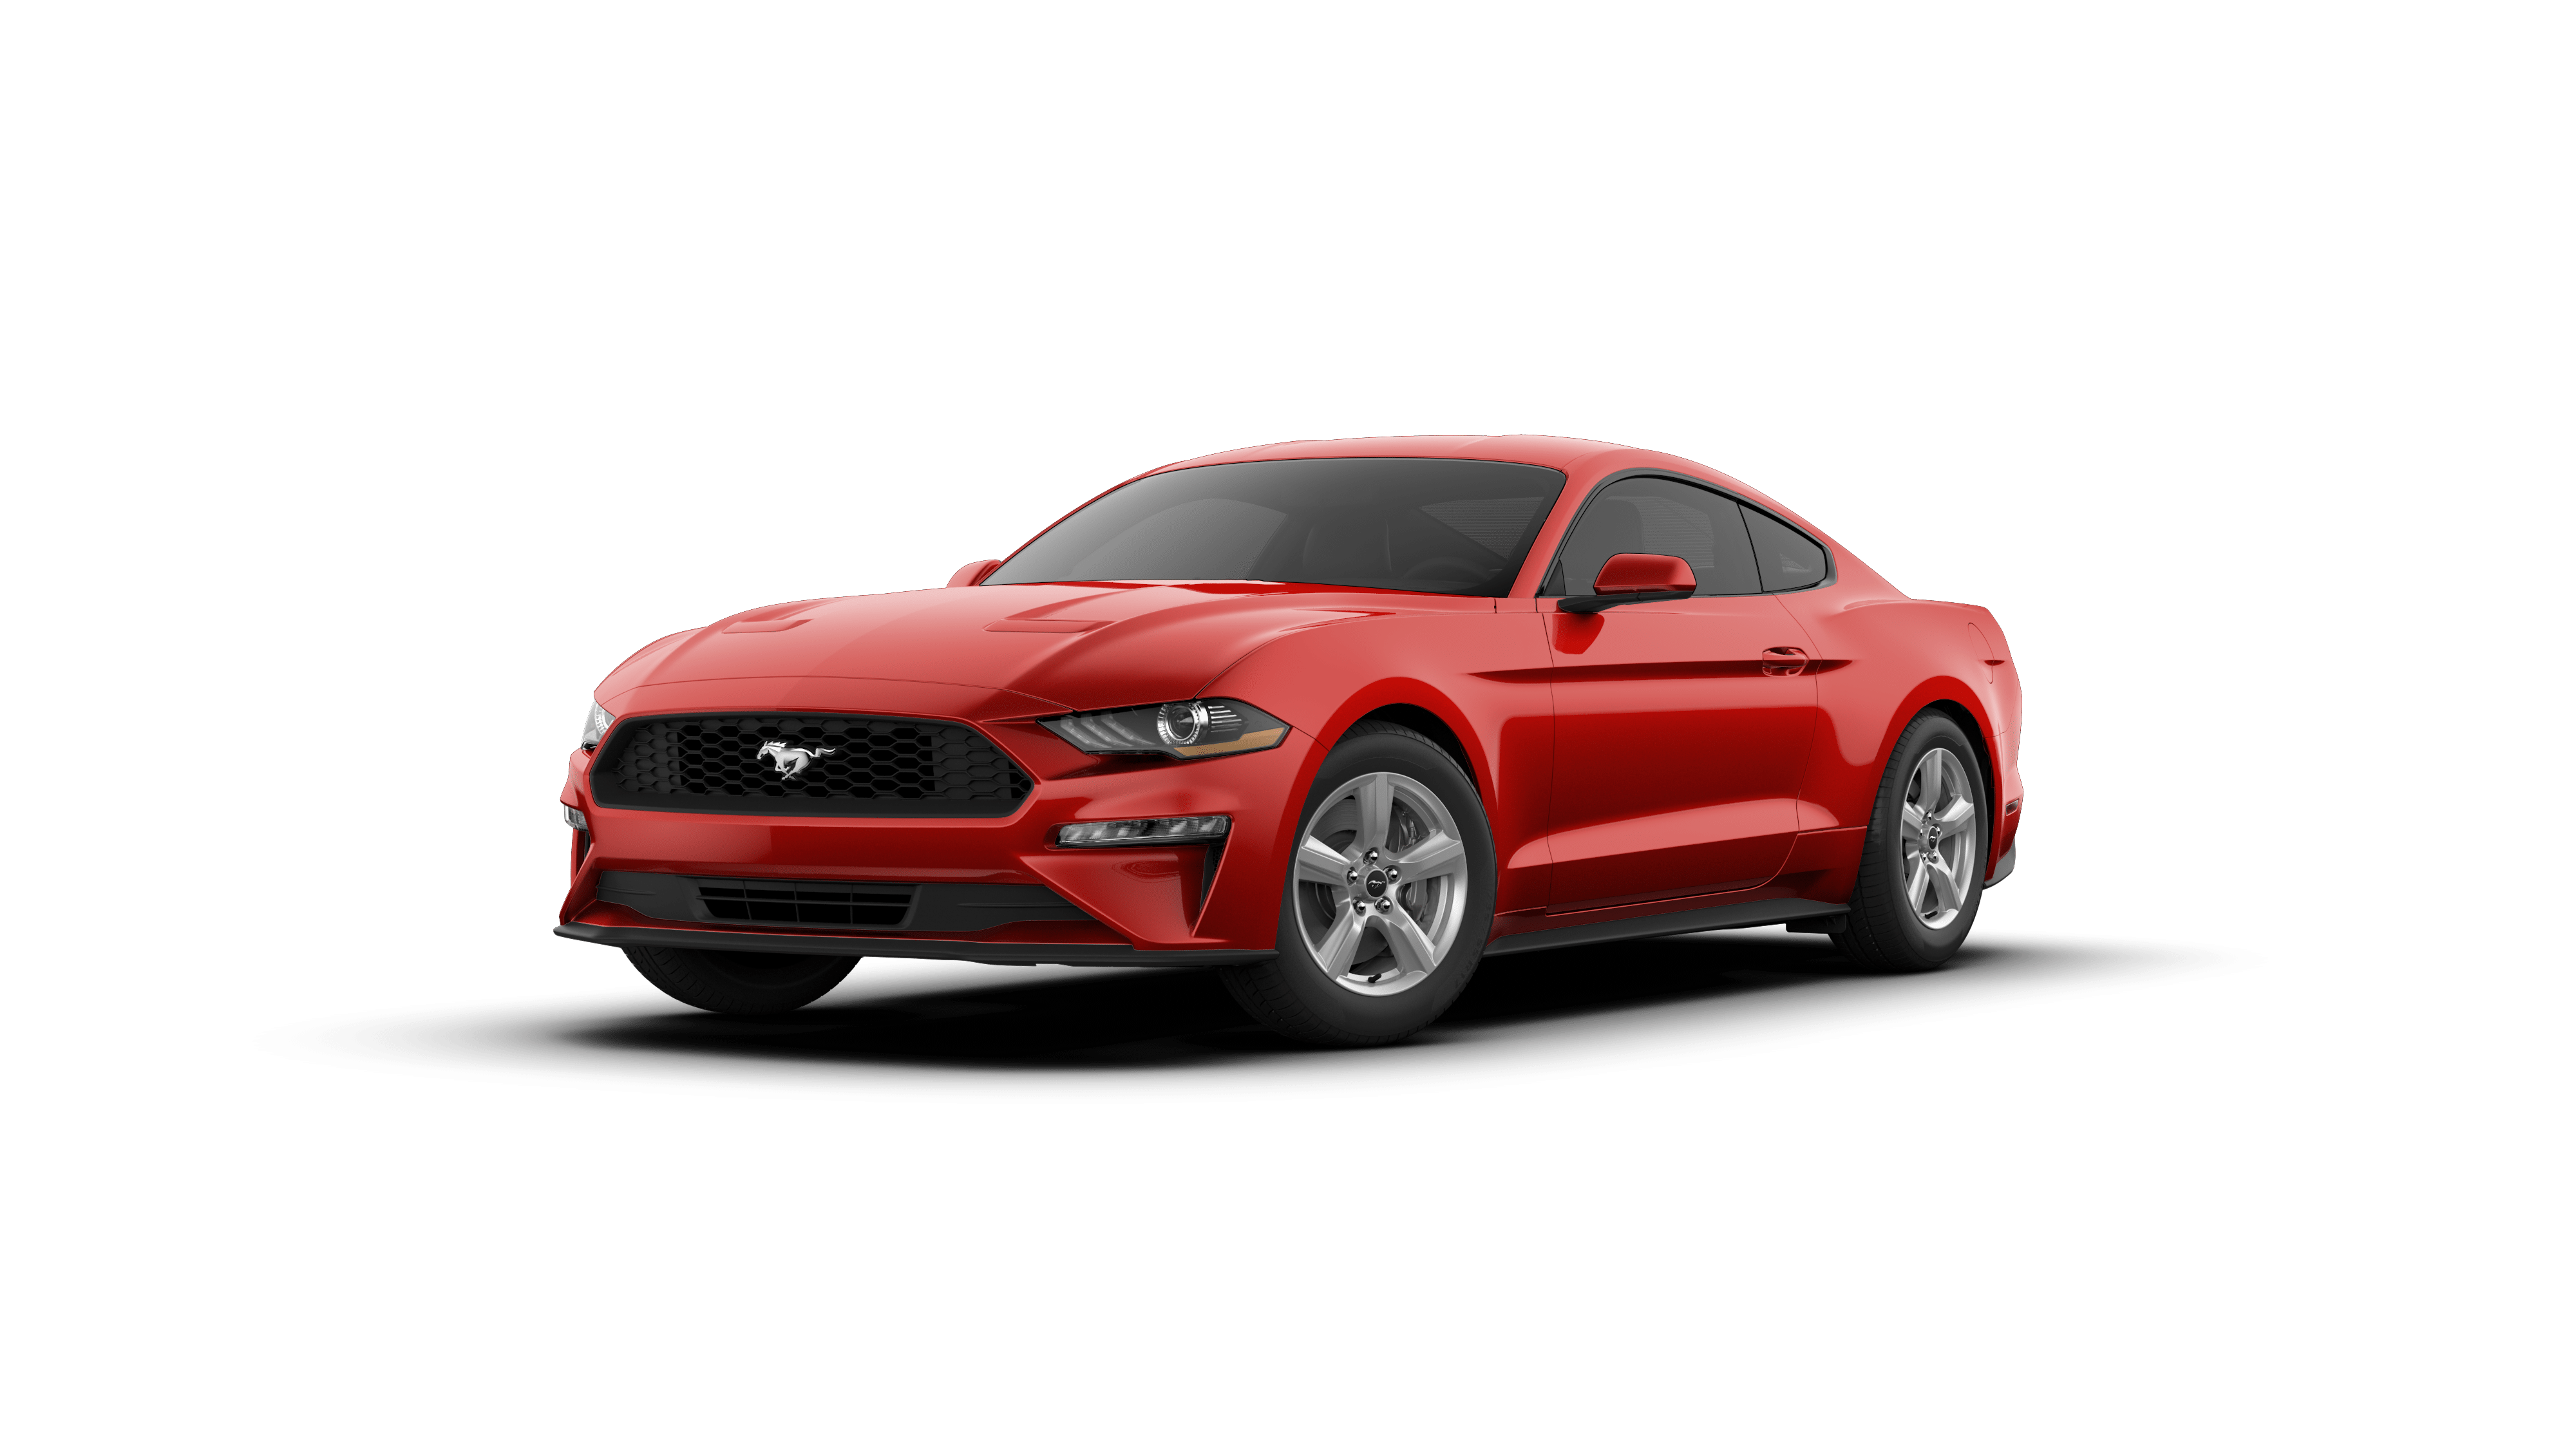 2018 Ford Mustang for sale in Sierra Vista 1FA6P8TH6J